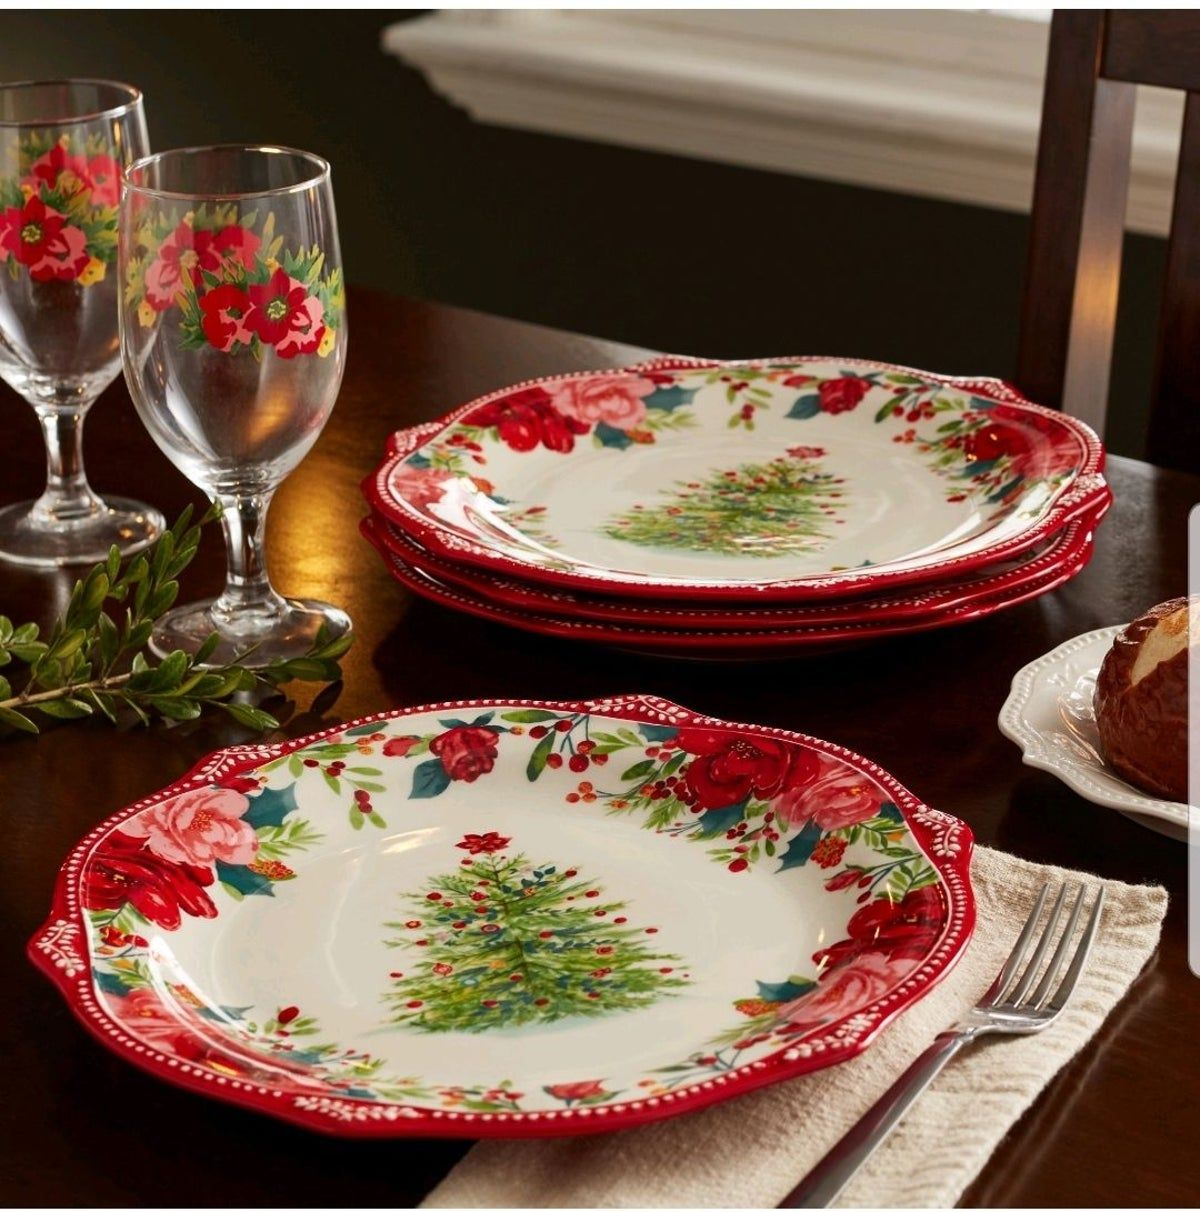 Pioneer Woman Christmas Dishes 2020 Pin by Kathryn Bogie on pioneer women in 2020 | Pioneer woman